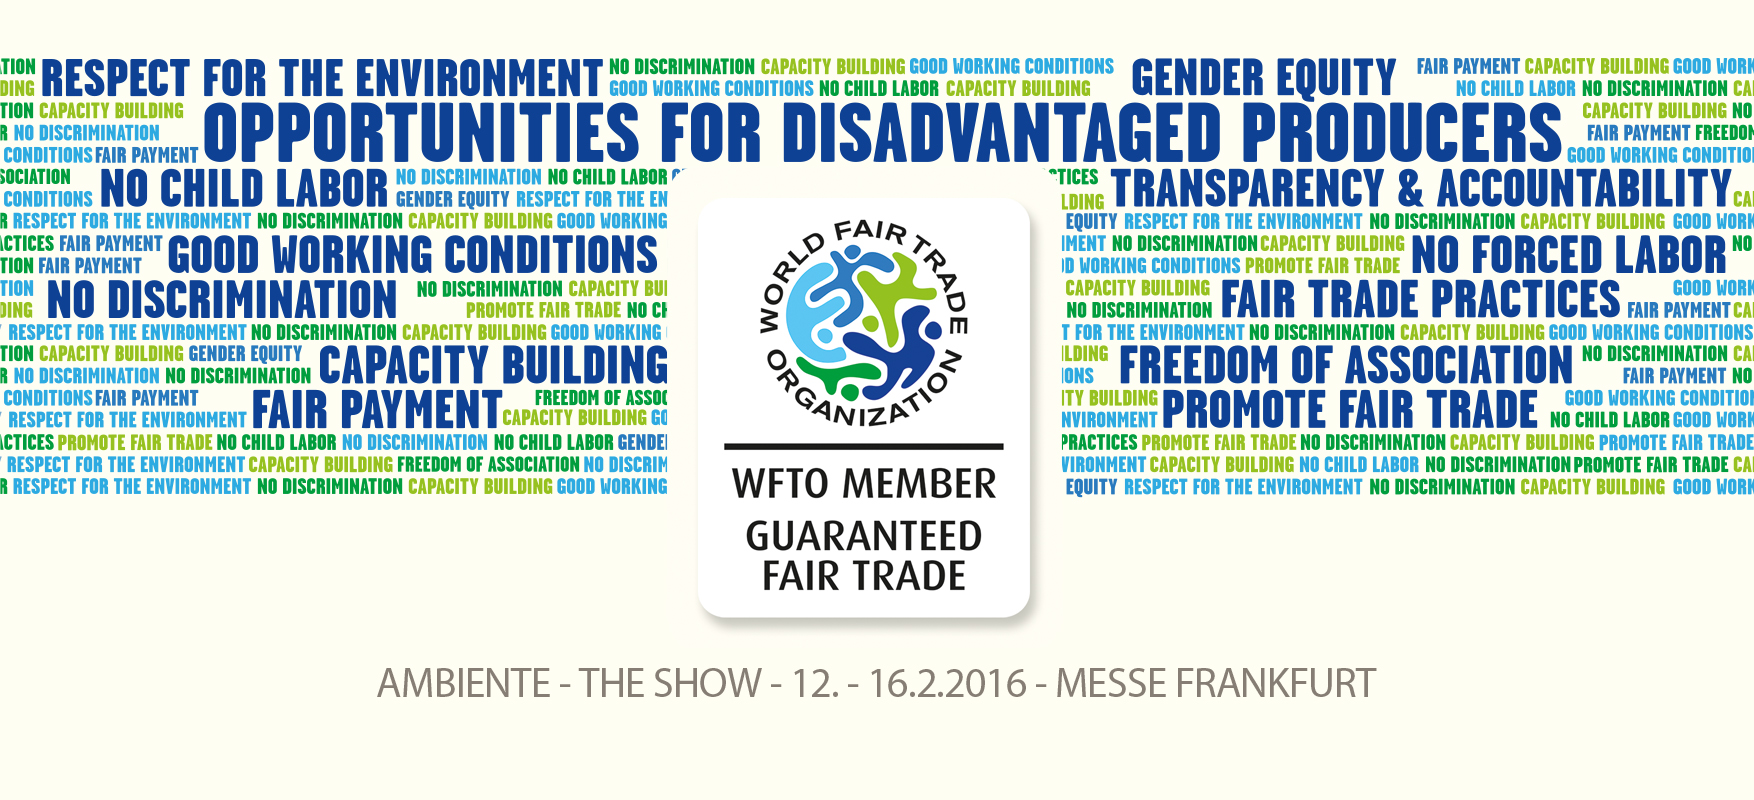 PRESS RELEASE: WFTO global product label launch at Ambiente in